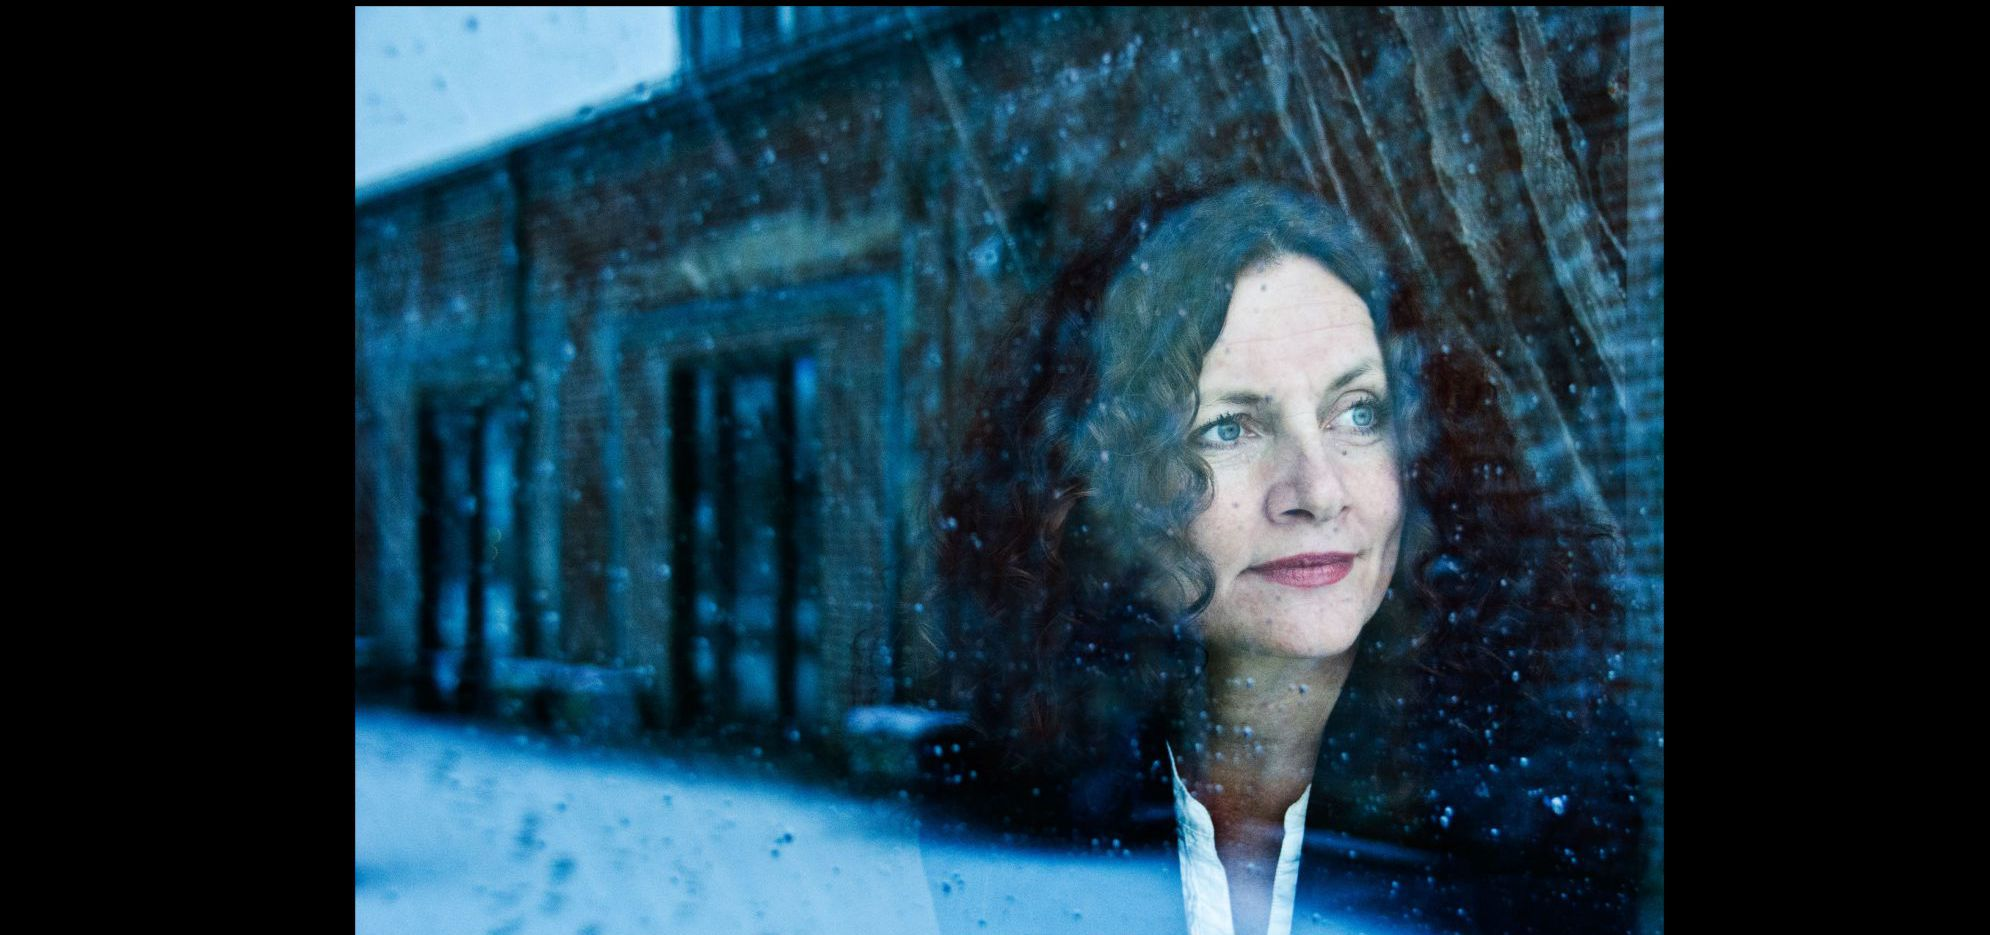 White, Window, Women, Mystery, Solitude, Rain, Human Face, Winter, Snow, Pensive, Sullen, Romance, Dating, One Person, Fine Art Portrait, Portrait, Blue, Female, Beauty, Looking Through Window, Hope, Love, Nostalgia, 40s, Fashion Model, One Woman Only, Anticipation, Storytelling, Waiting, Cold, Beautiful, Disappointment, feelings, Attractive Female, Femininity, Serene People, Artist's Model, Wishing, One Young Woman Only, Raindrop, Fragility, Purity, Innocence